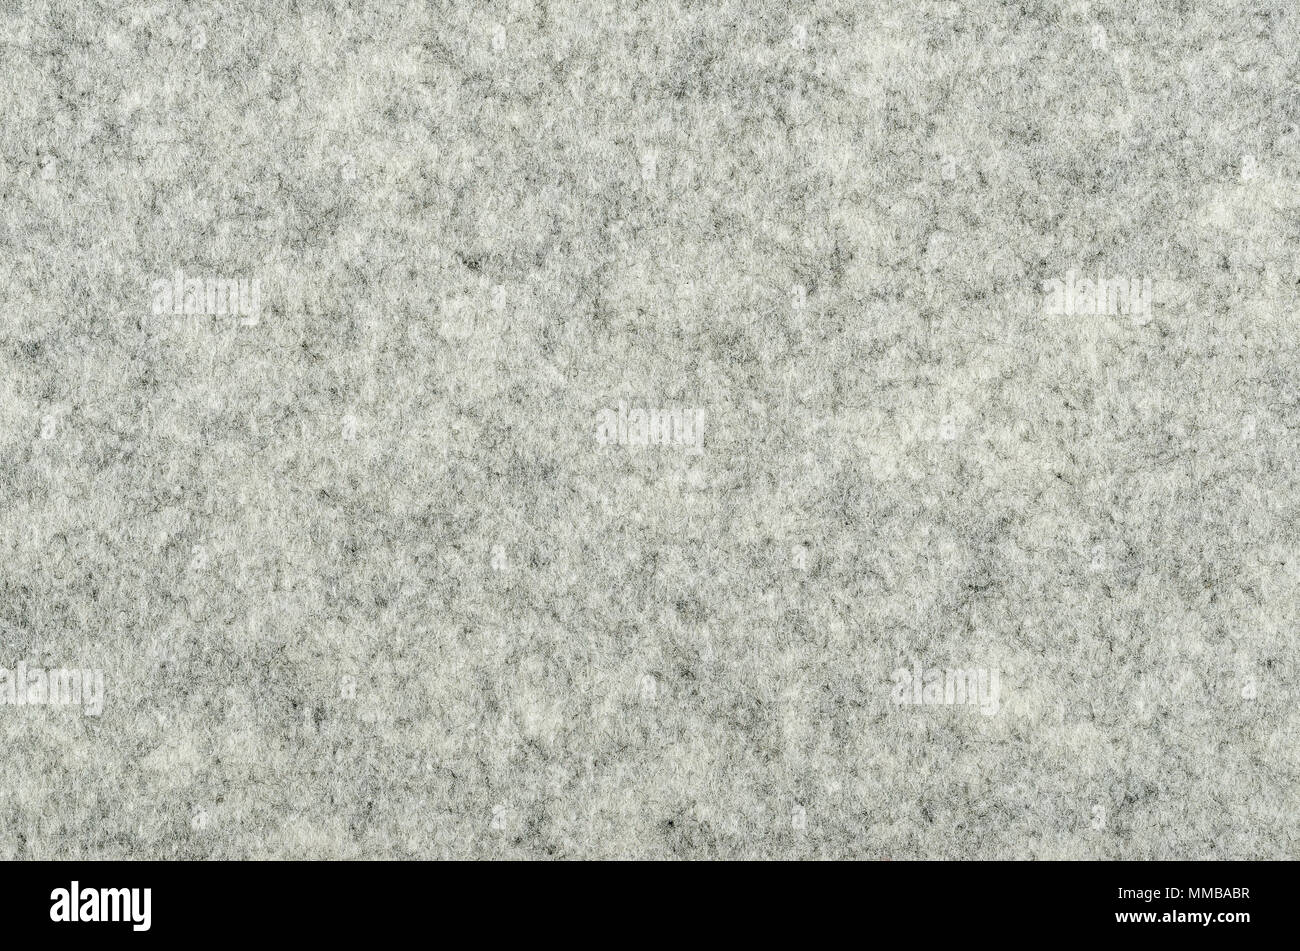 Gray felt surface. Textile material, made of matted synthetic fibers. White, gray and black acrylic pressed together. Fabric pattern. Background. - Stock Image